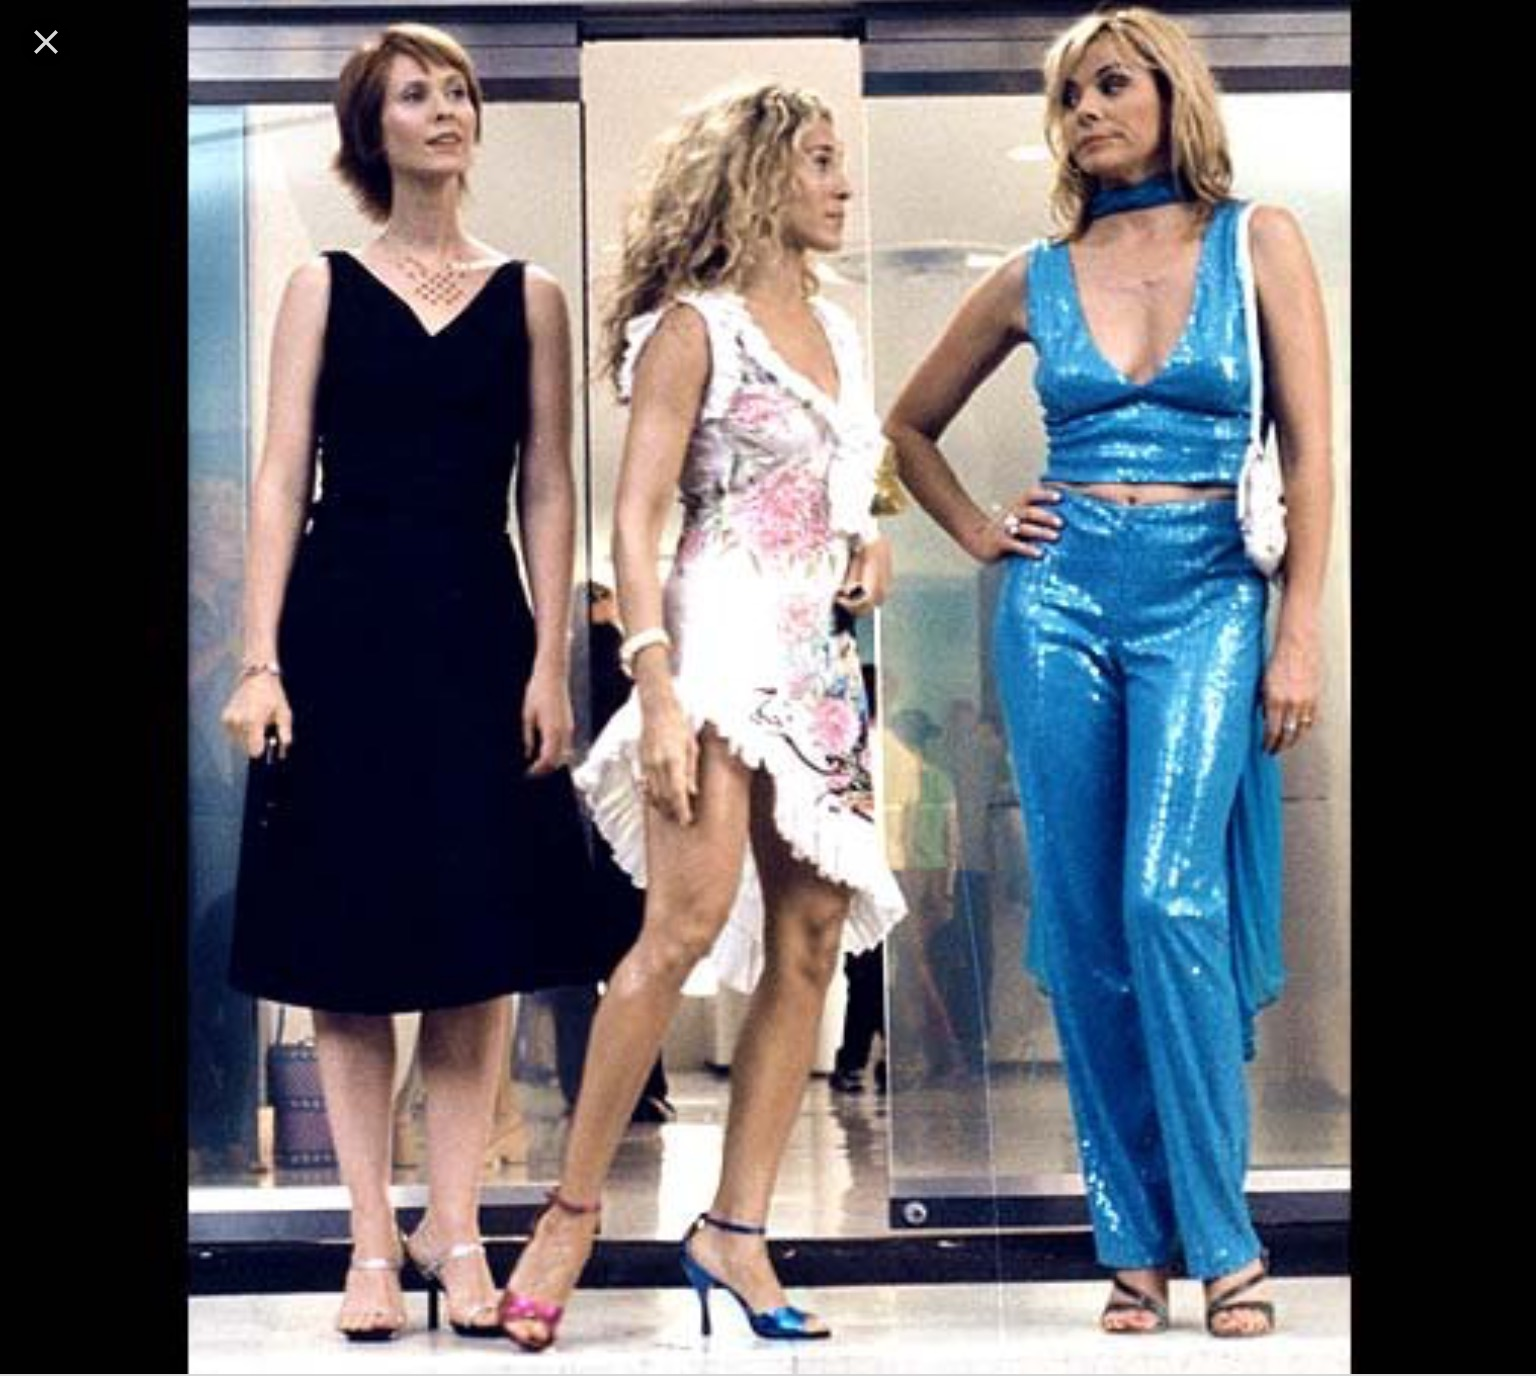 SJP & The girls